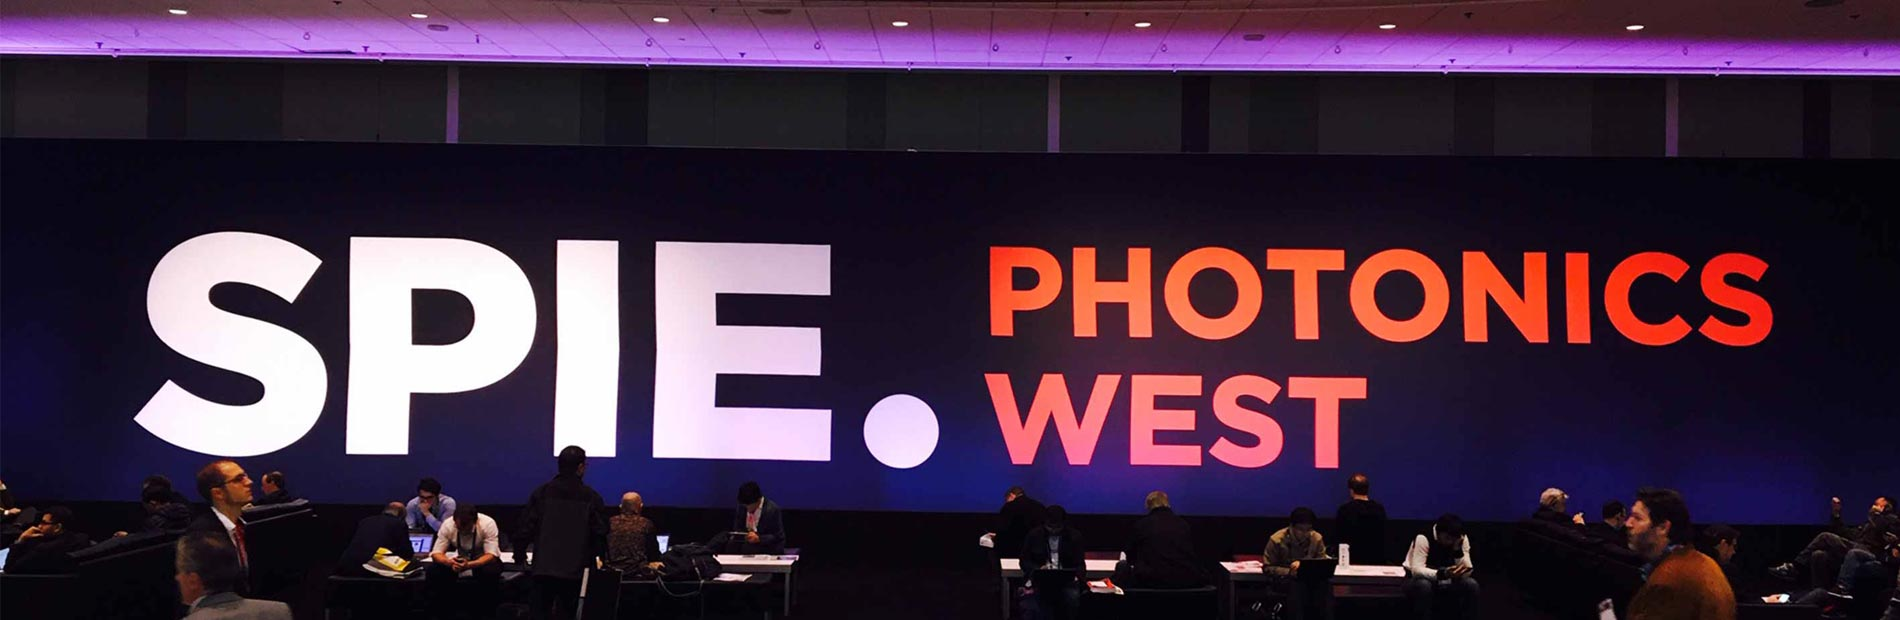 019 Photonics West conference